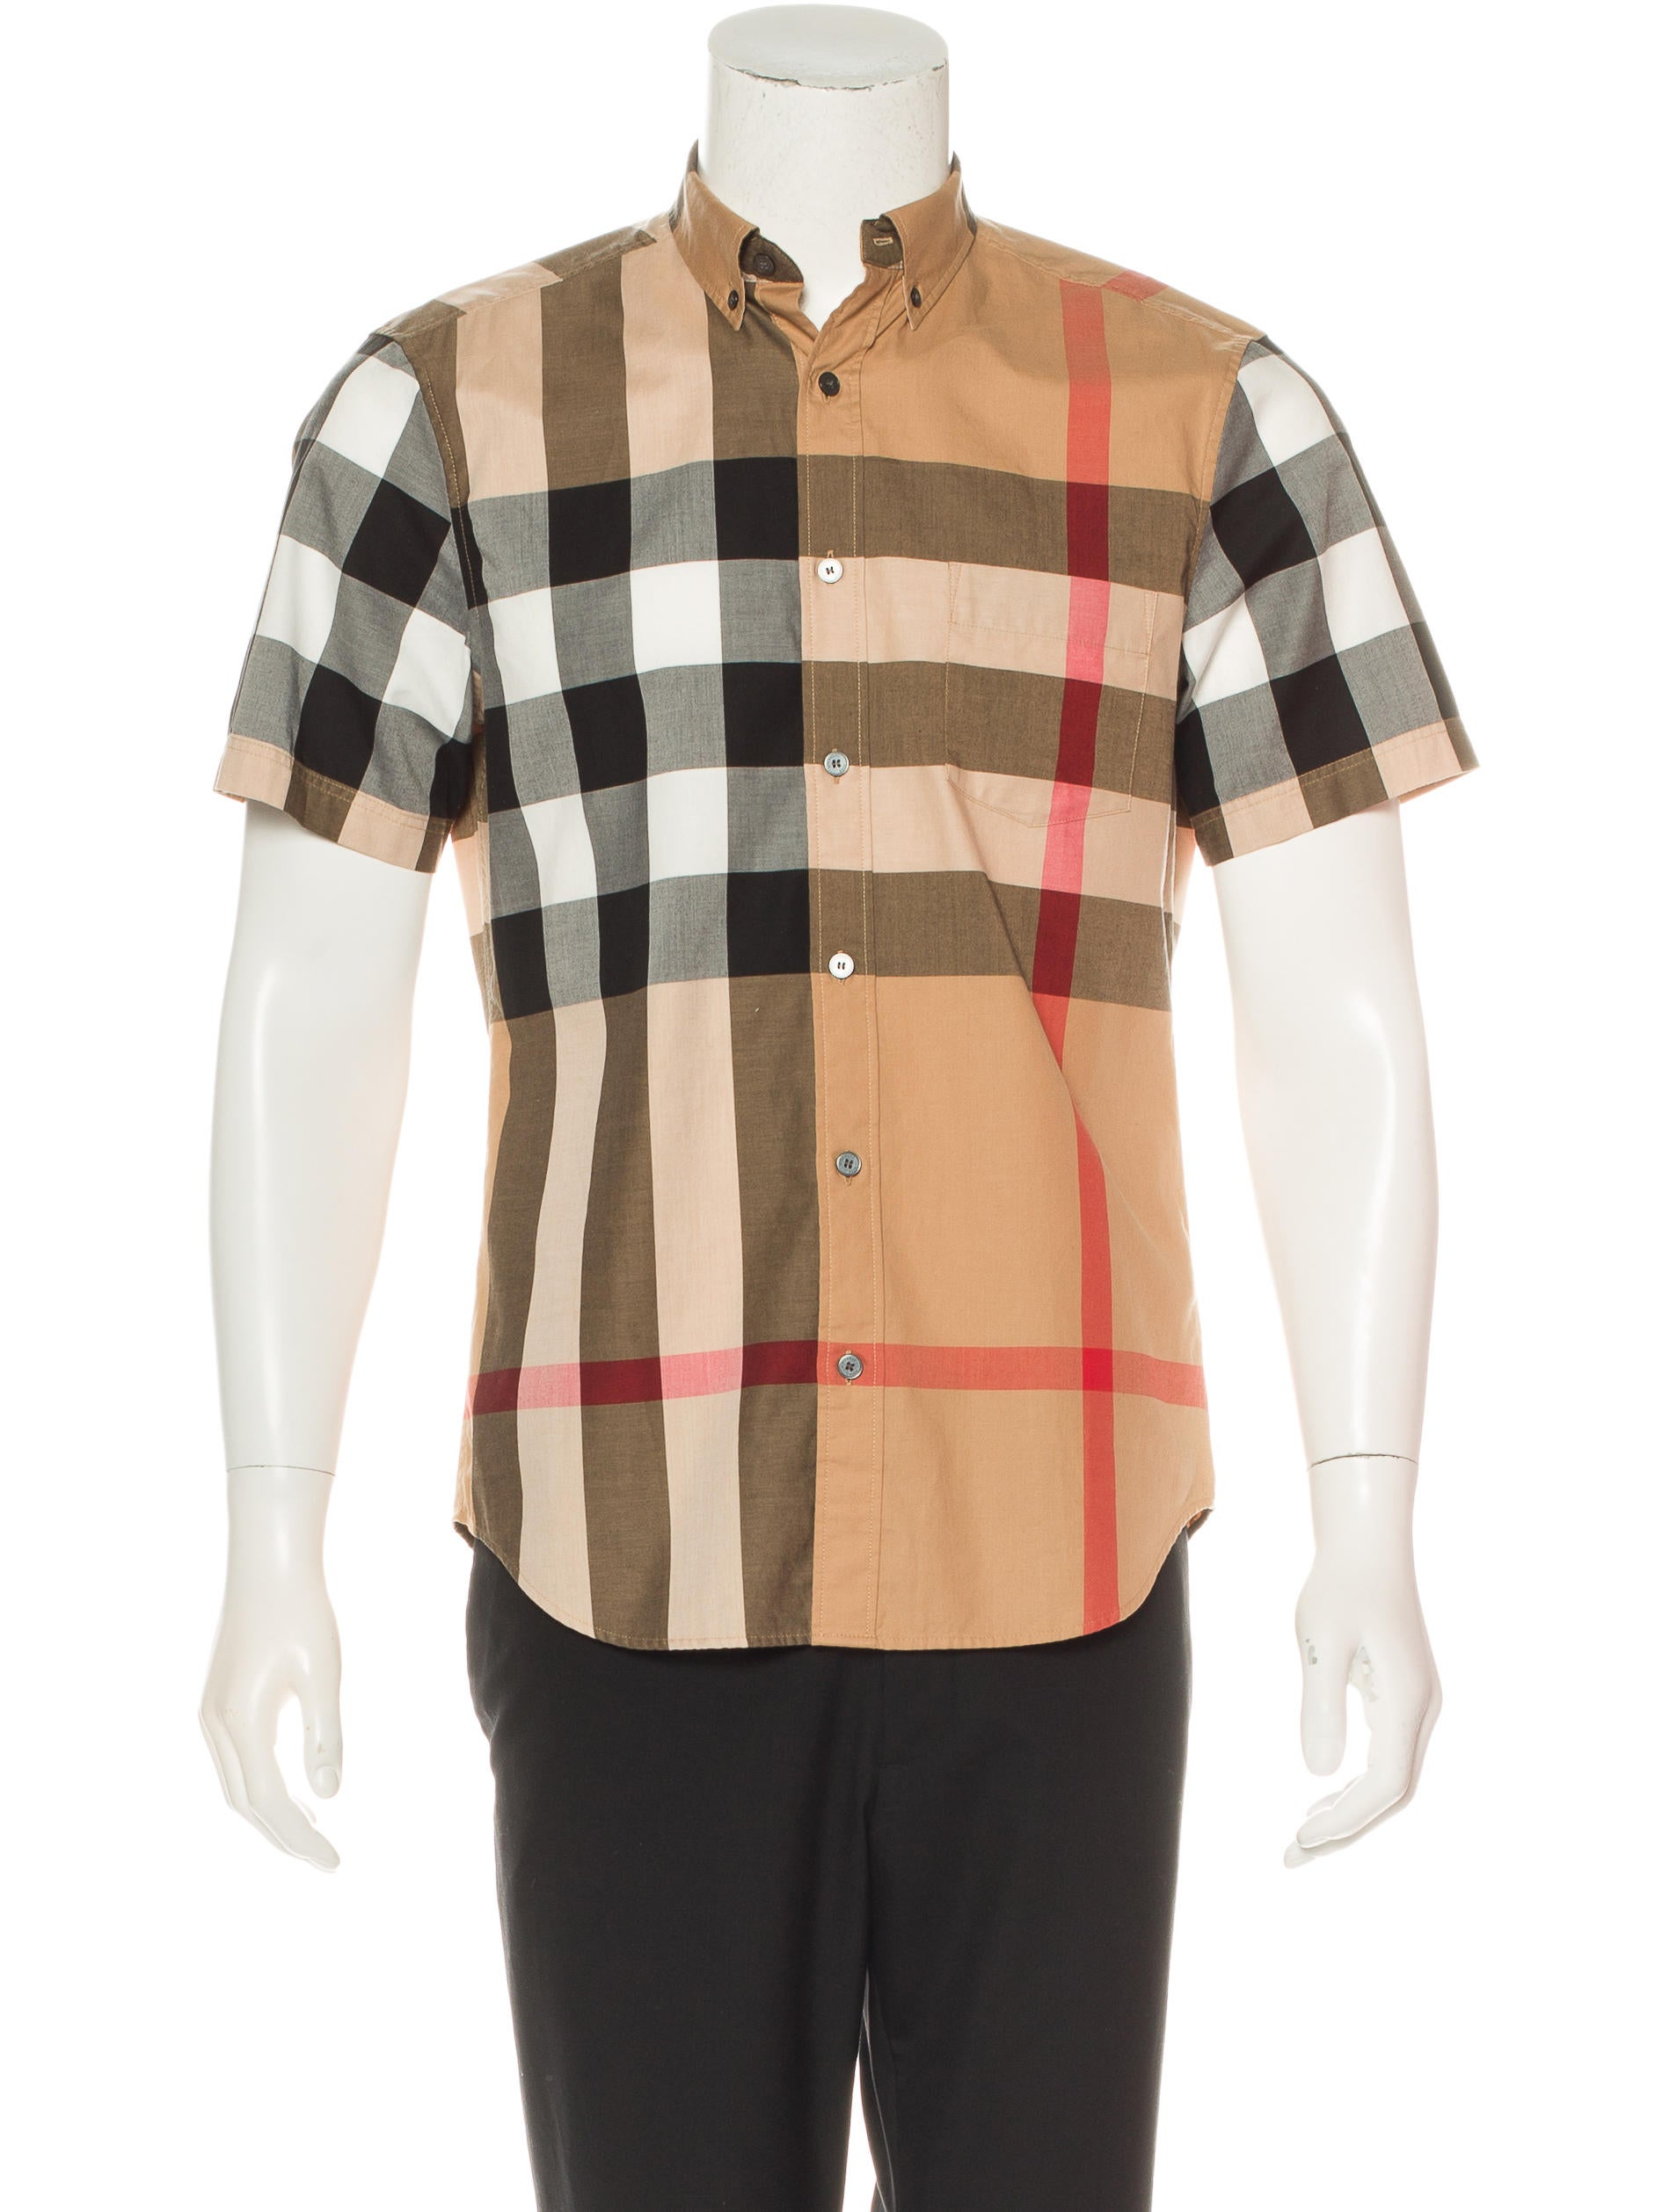 Burberry brit nova check shirt clothing bbr27058 the for Burberry brit checked shirt